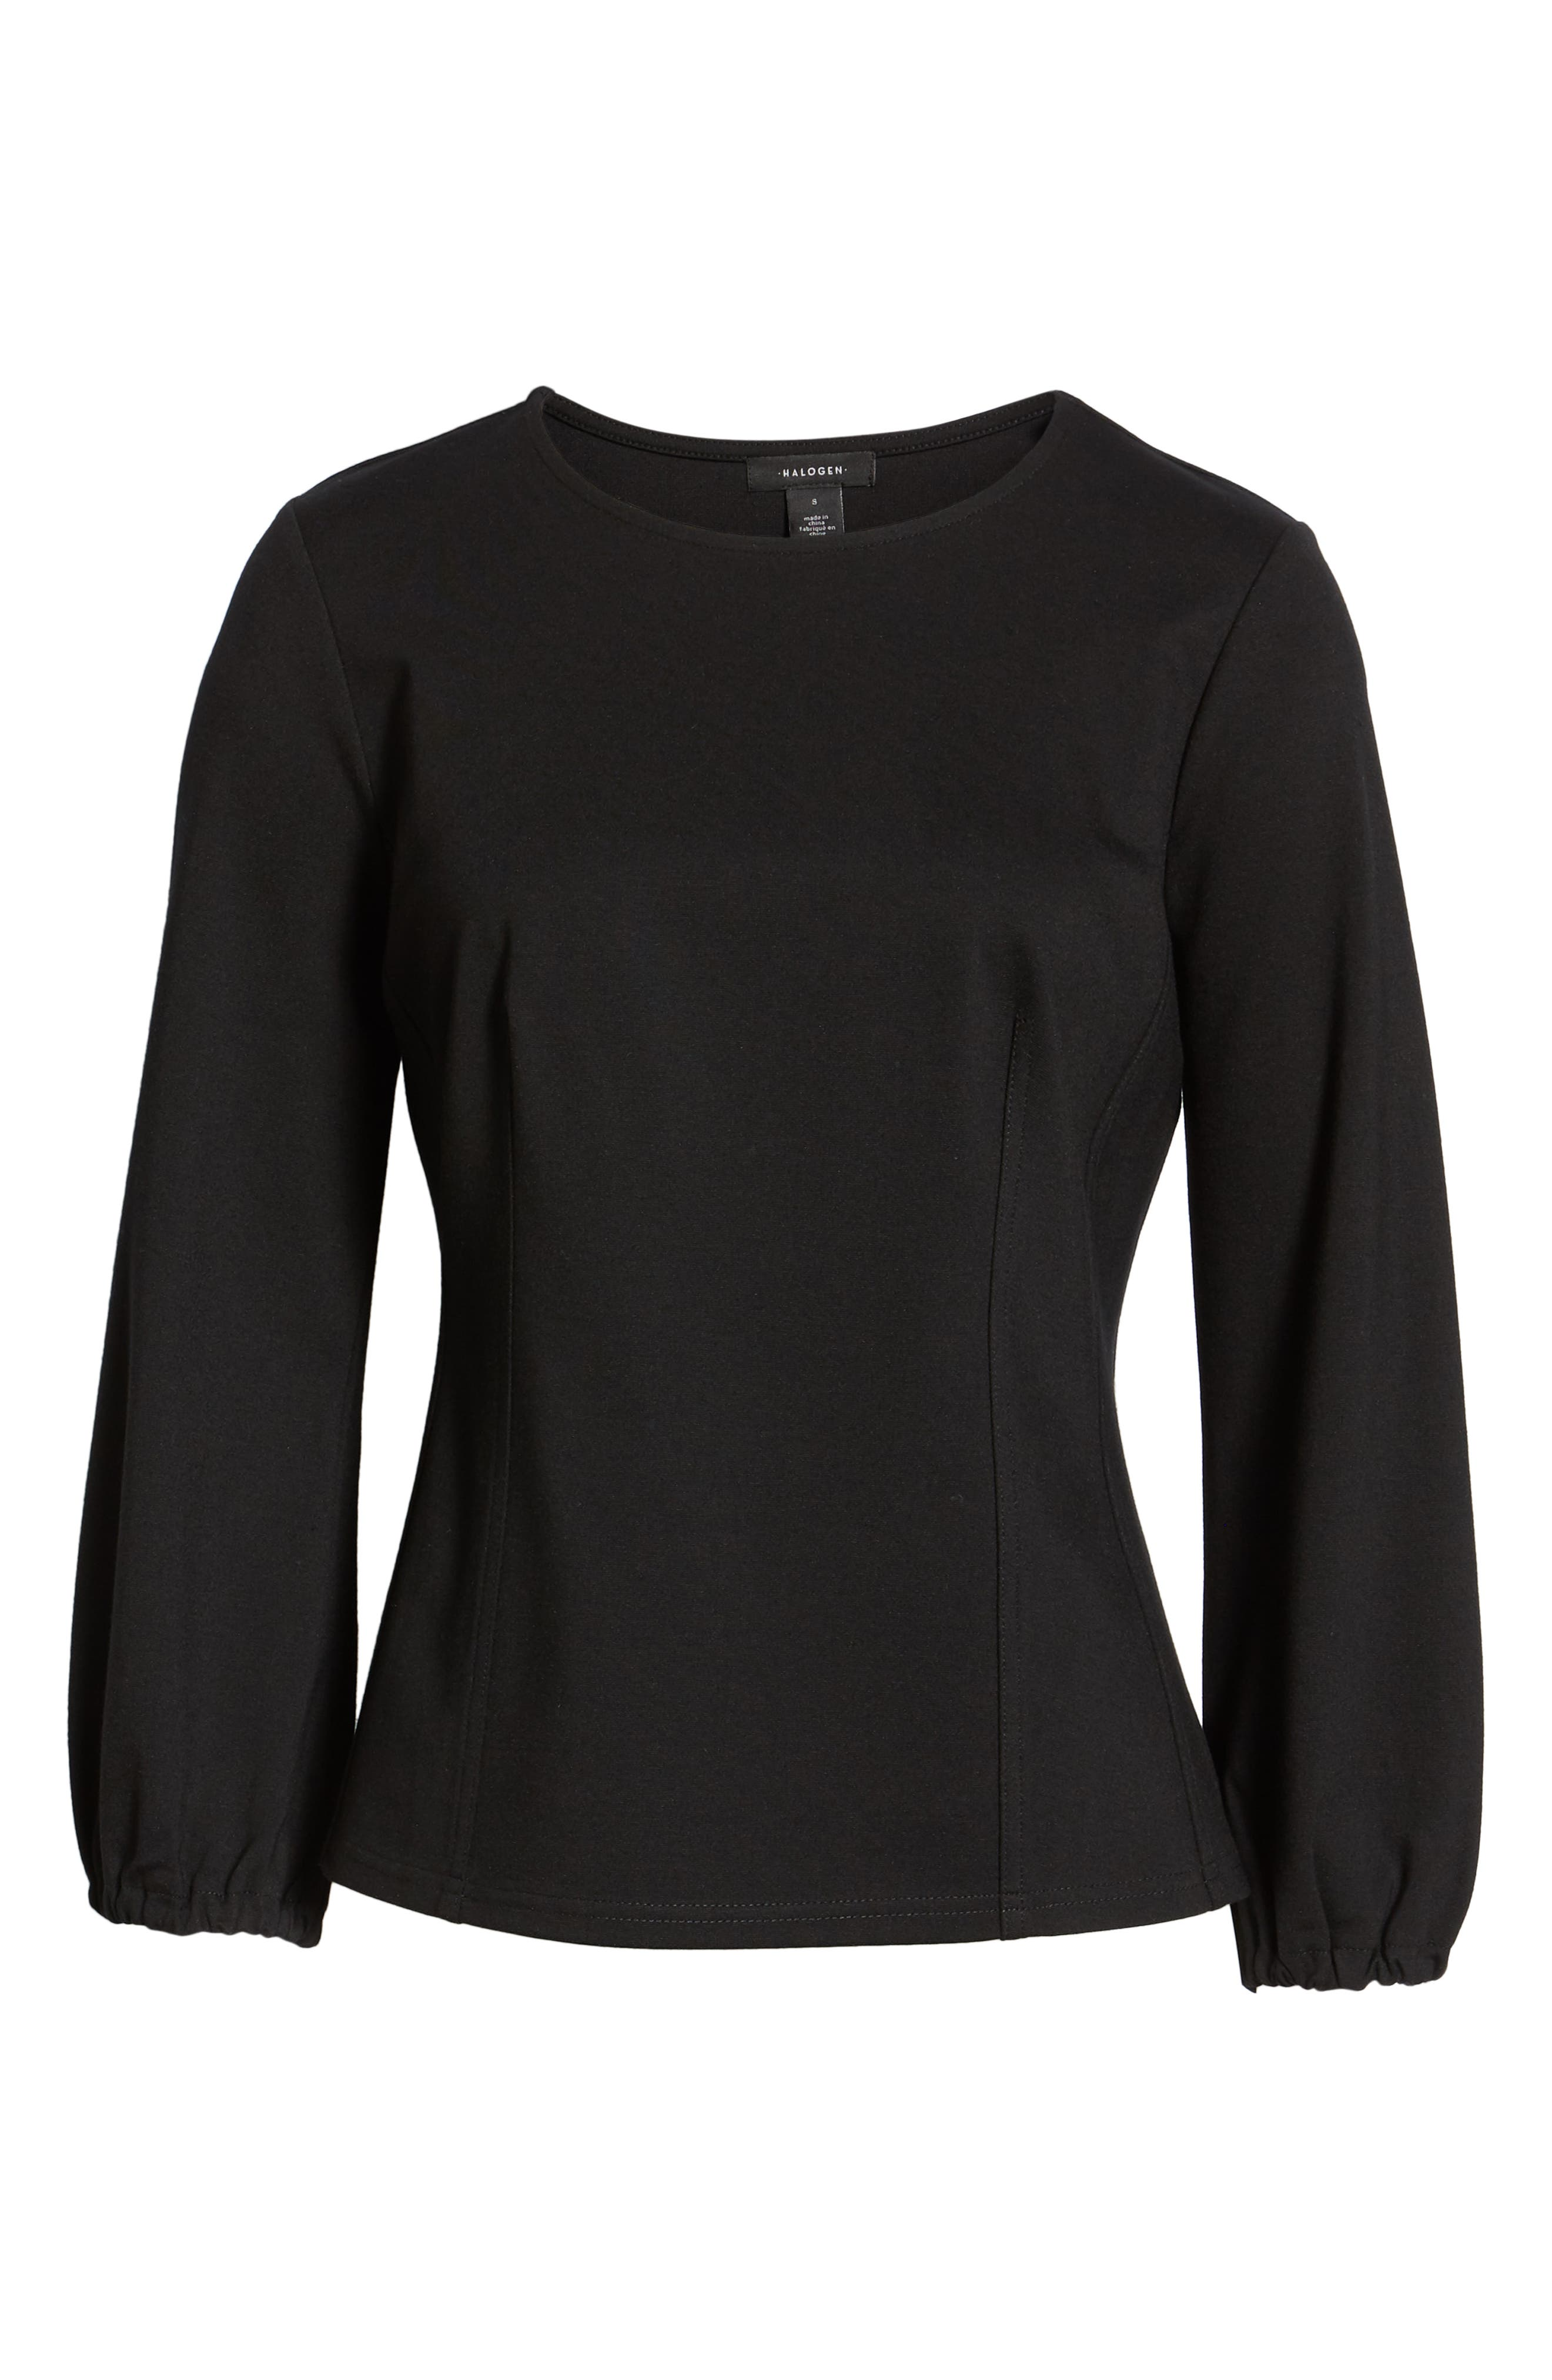 HALOGEN<SUP>®</SUP>, Structured Stretch Knit Top, Alternate thumbnail 6, color, BLACK